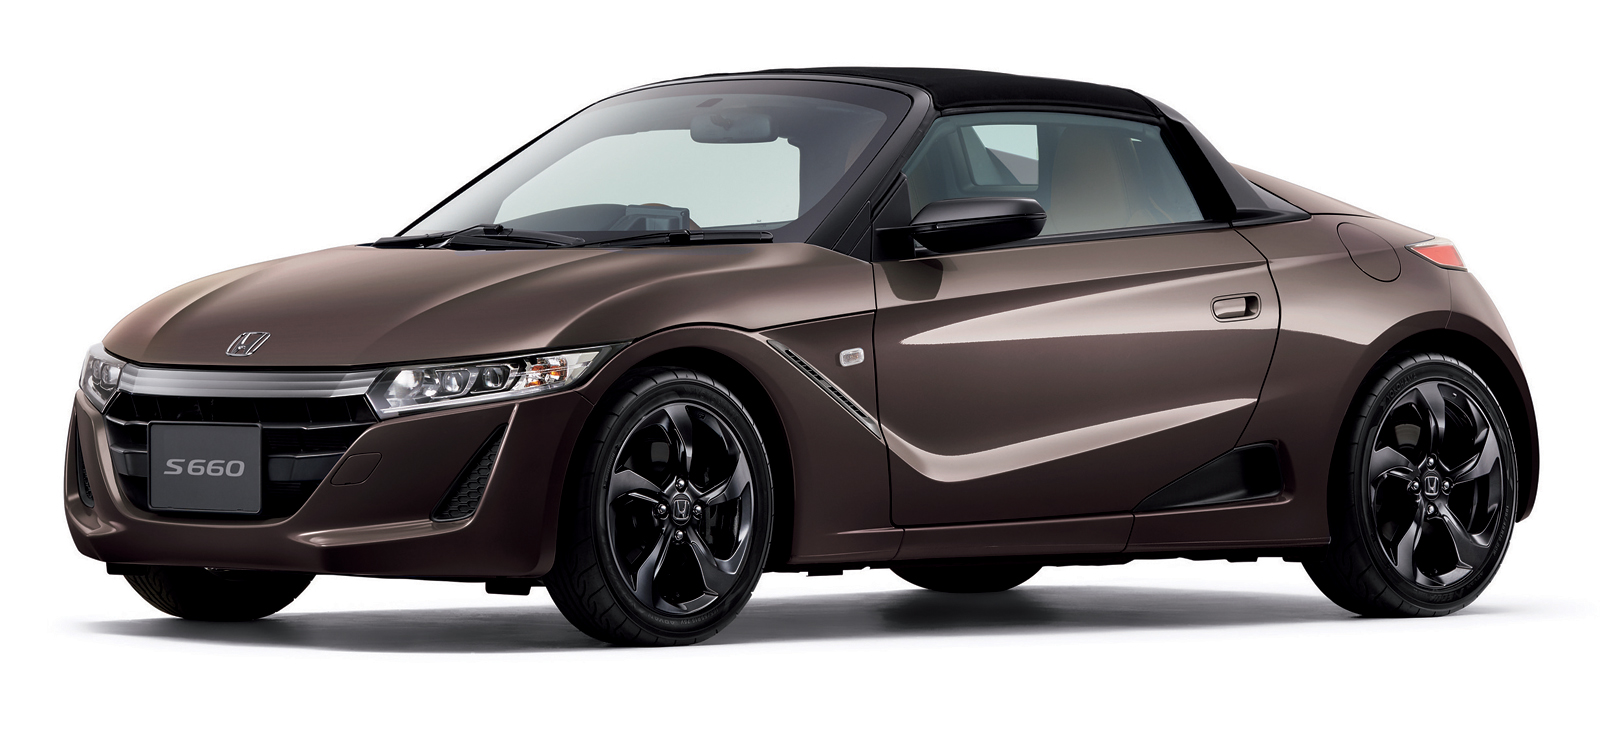 Honda Beat 2017 >> Honda S660 Bruno Leather Edition Turns Shifting Into A Game | Carscoops